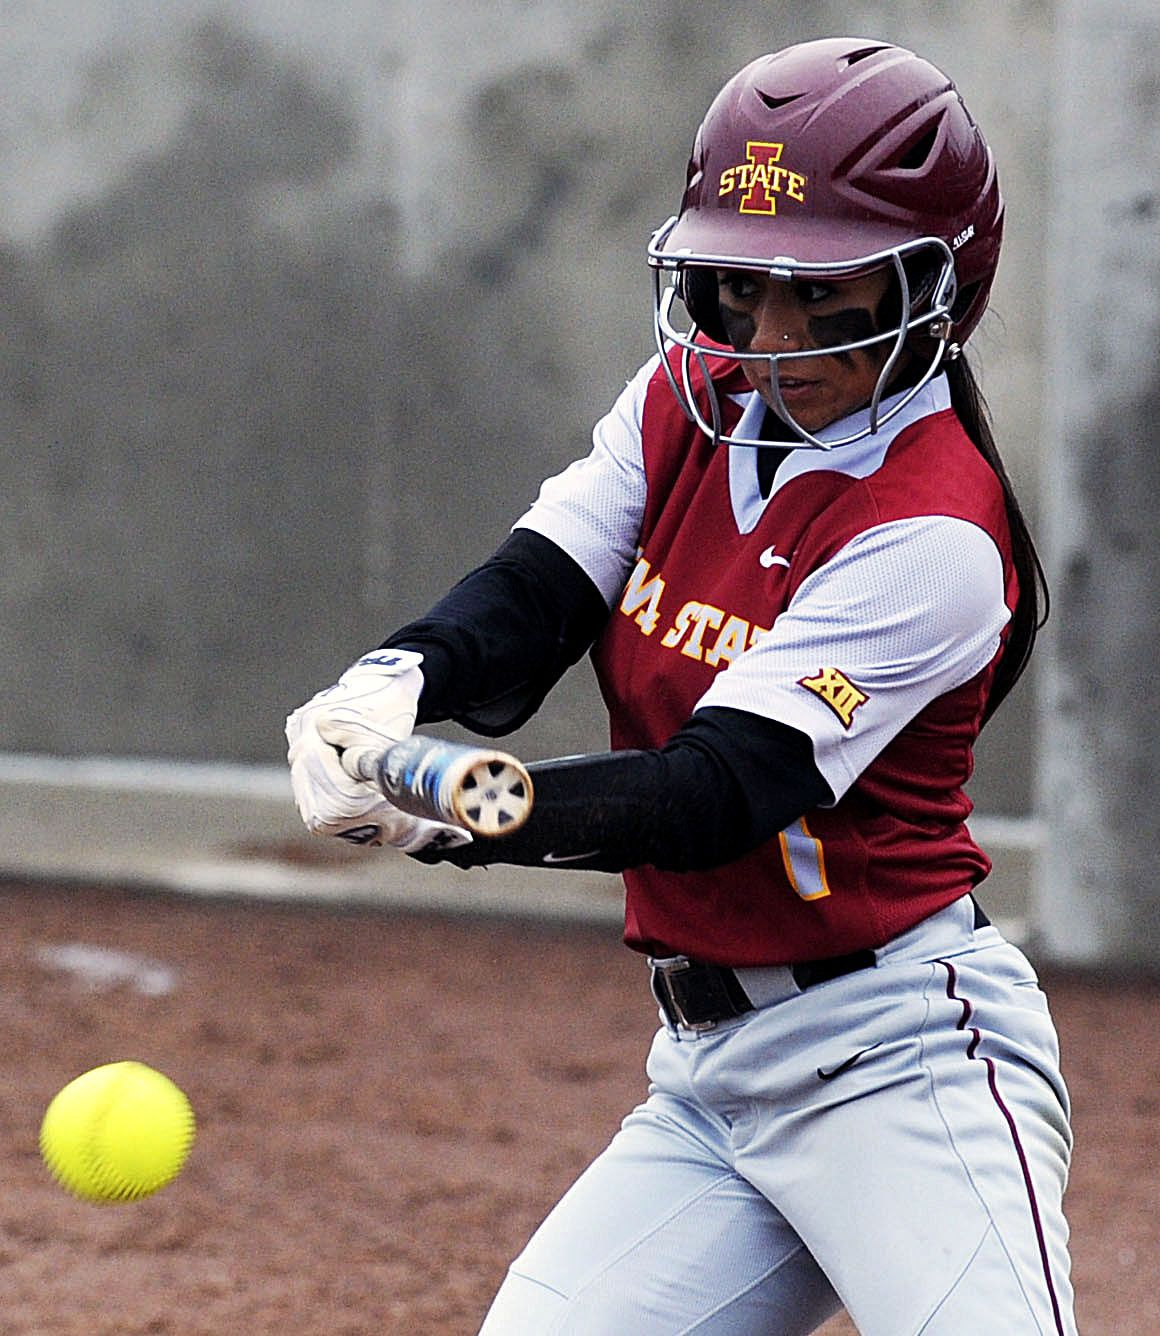 Iowa State S Brittany Gomez Hits A Single During Third Inning